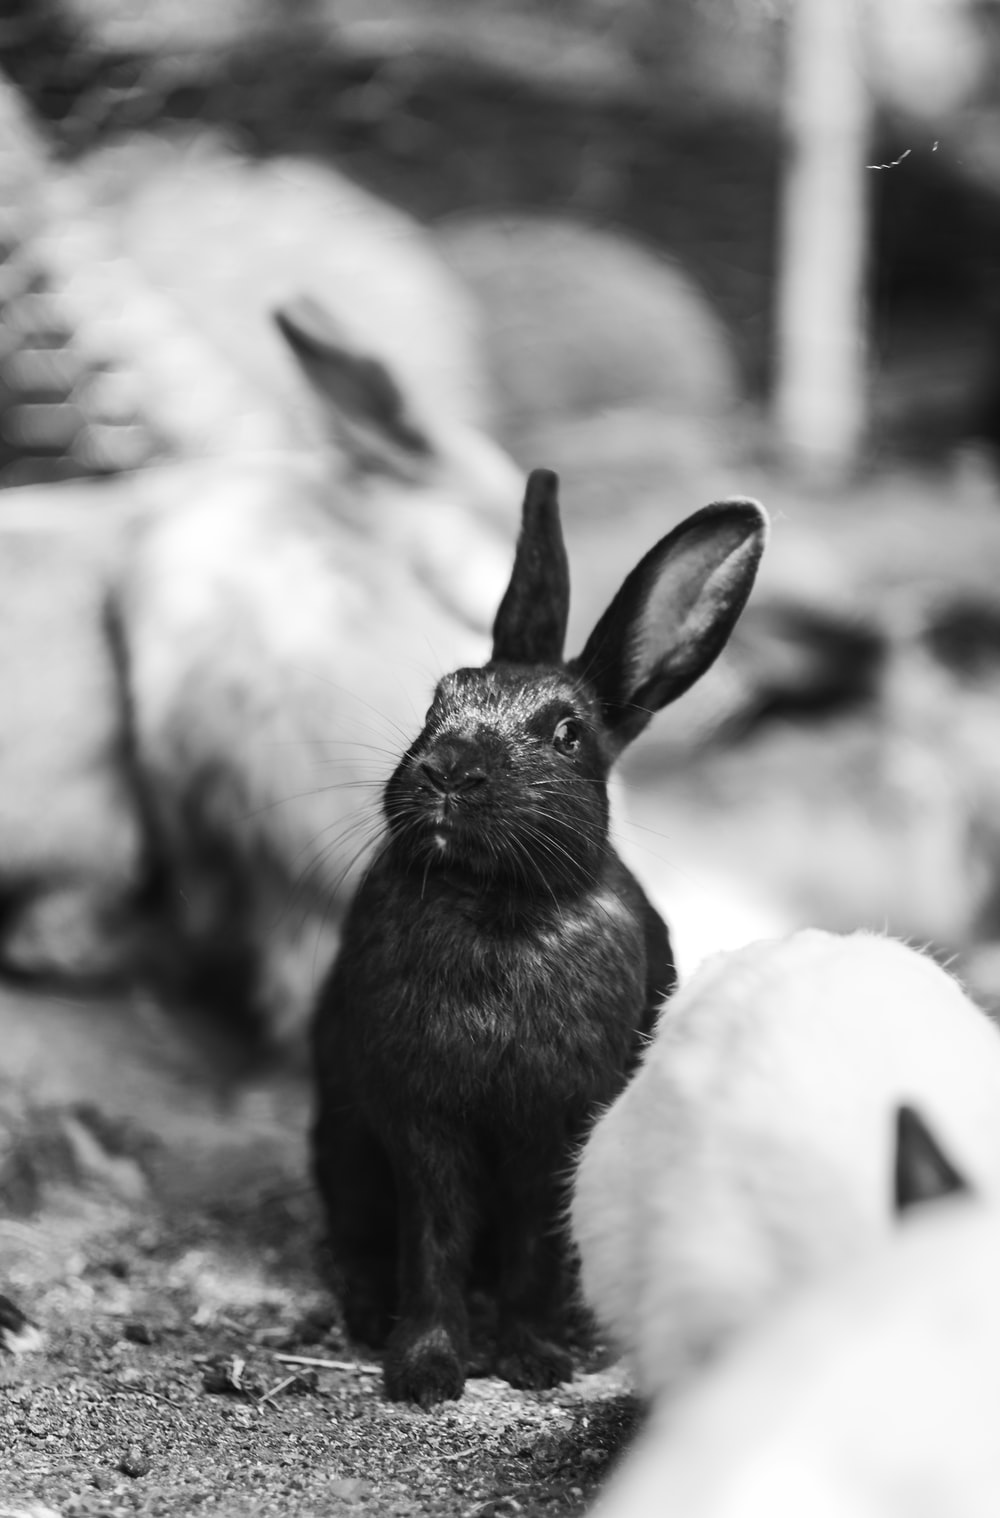 grayscale photography of rabbit